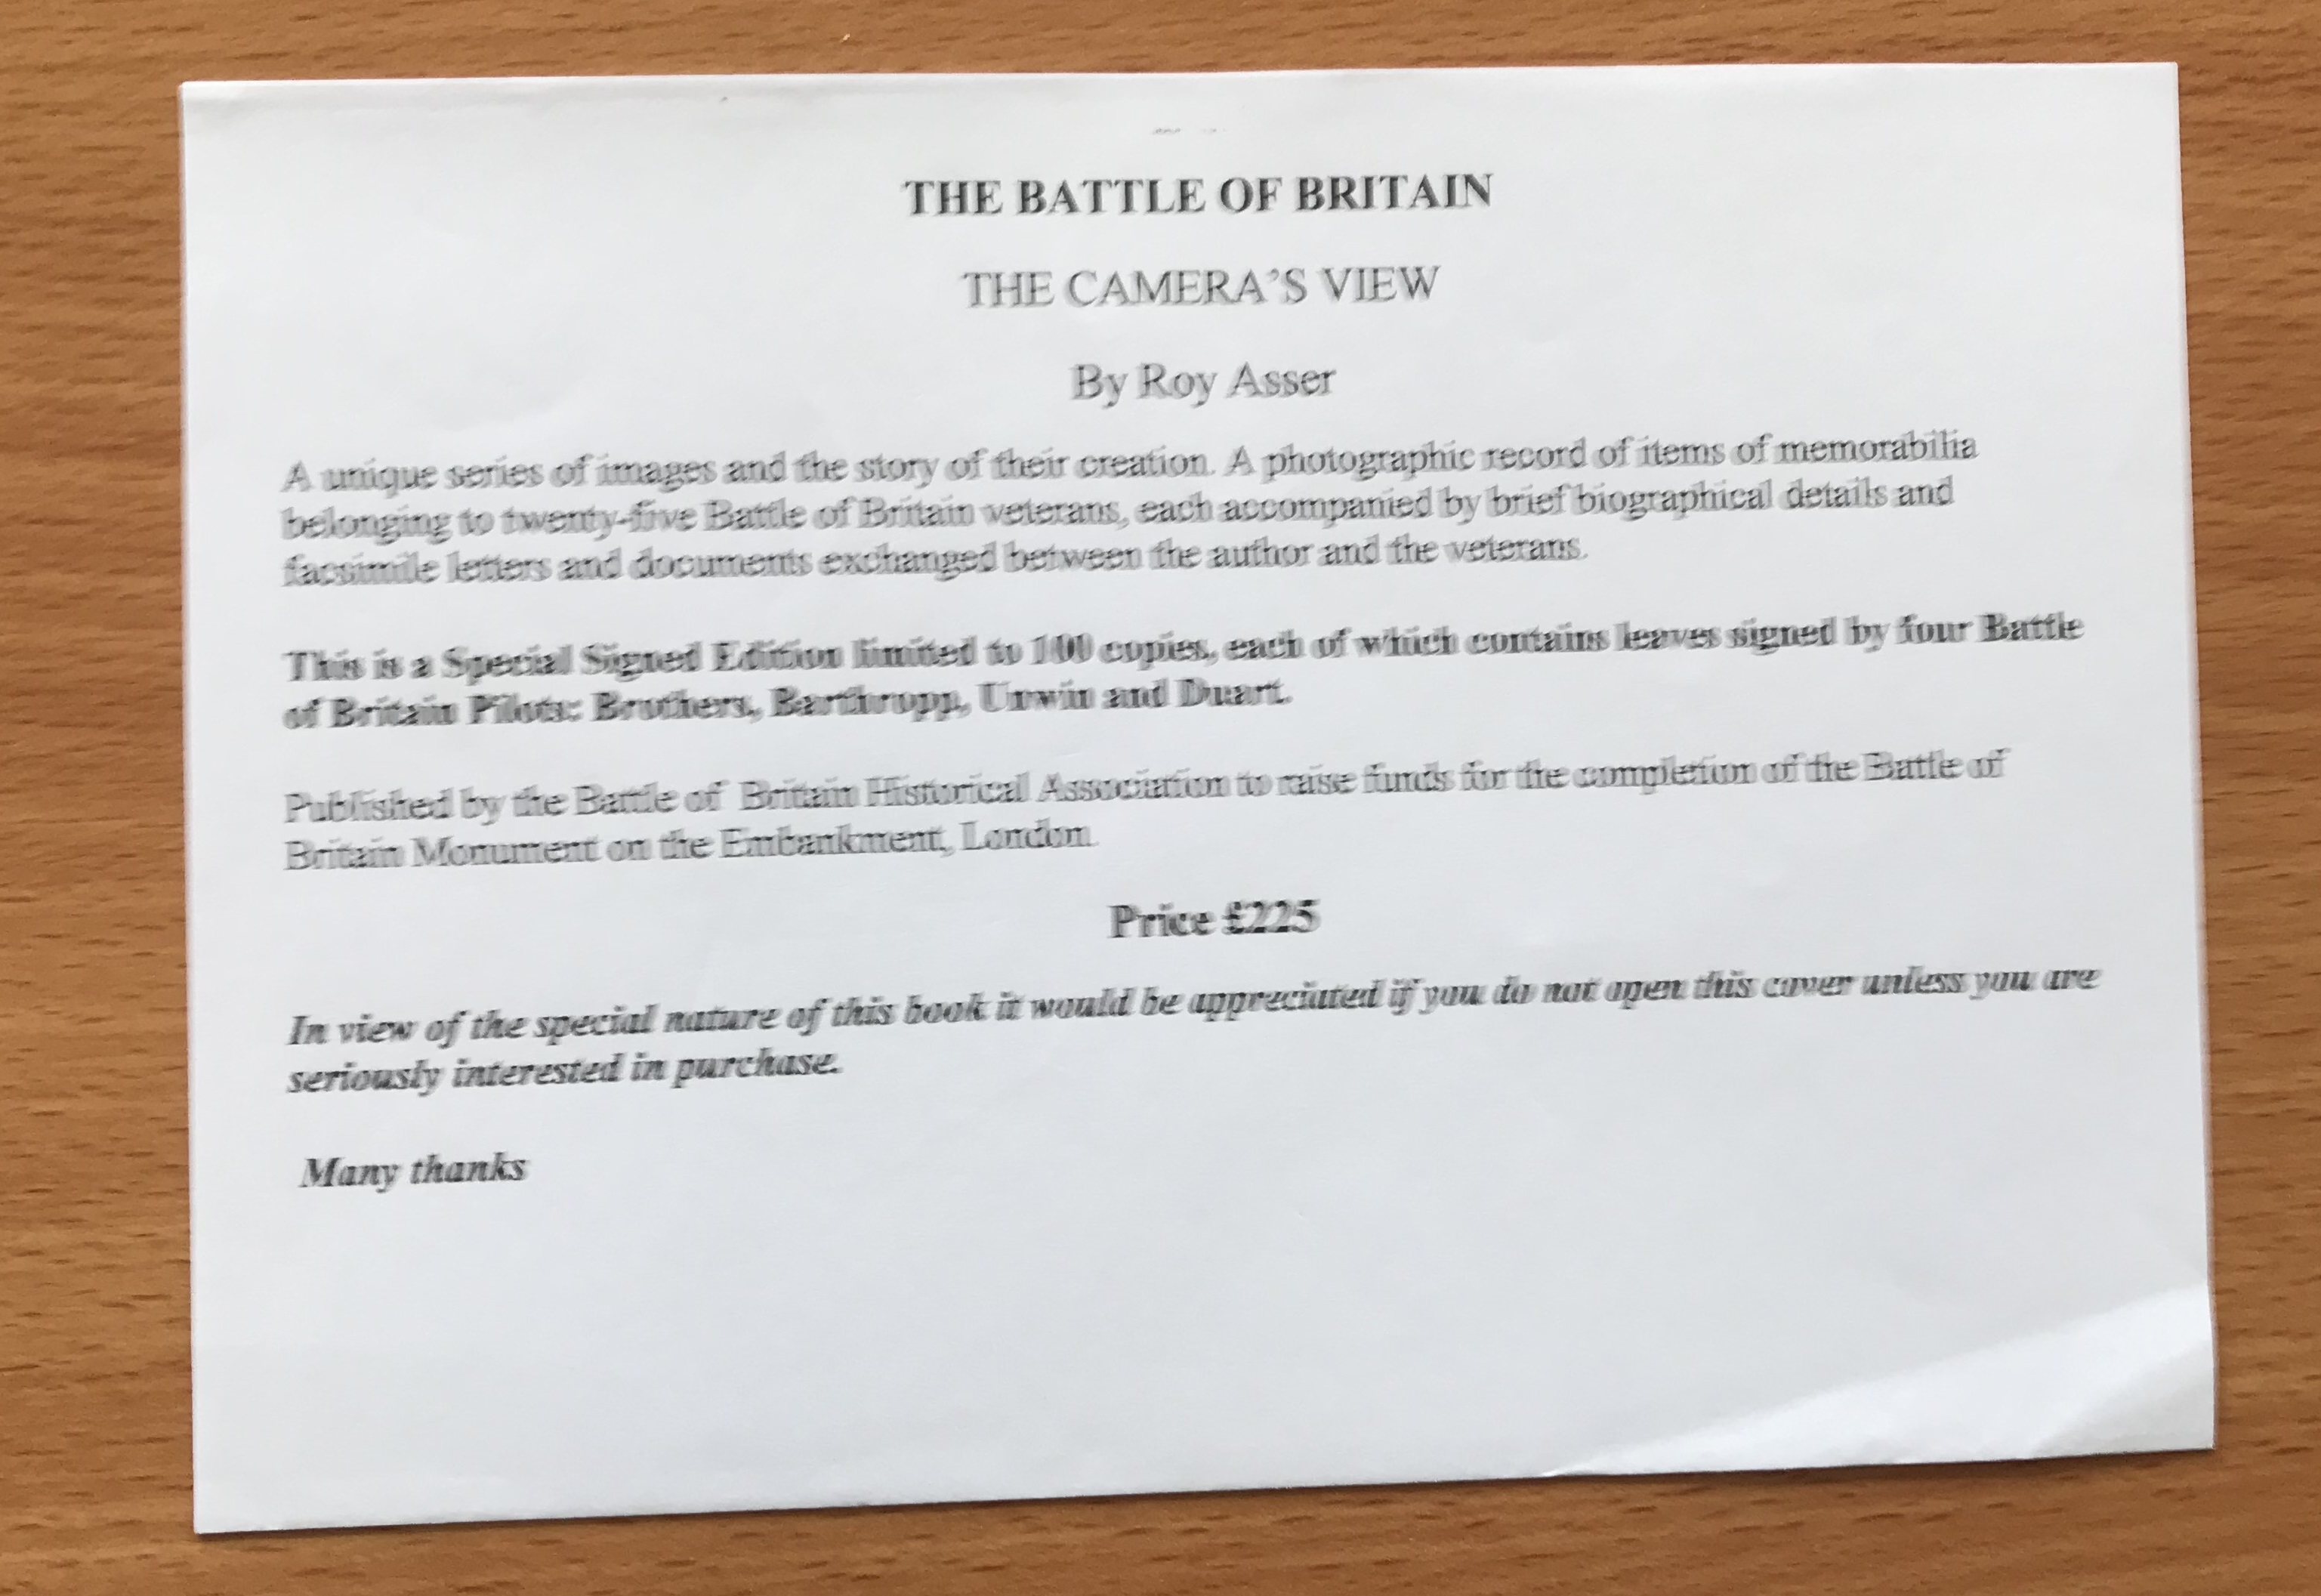 World War II The Battle of Britain The Cameras View A Fine Art Photographers Tribute to the Few by - Image 7 of 7